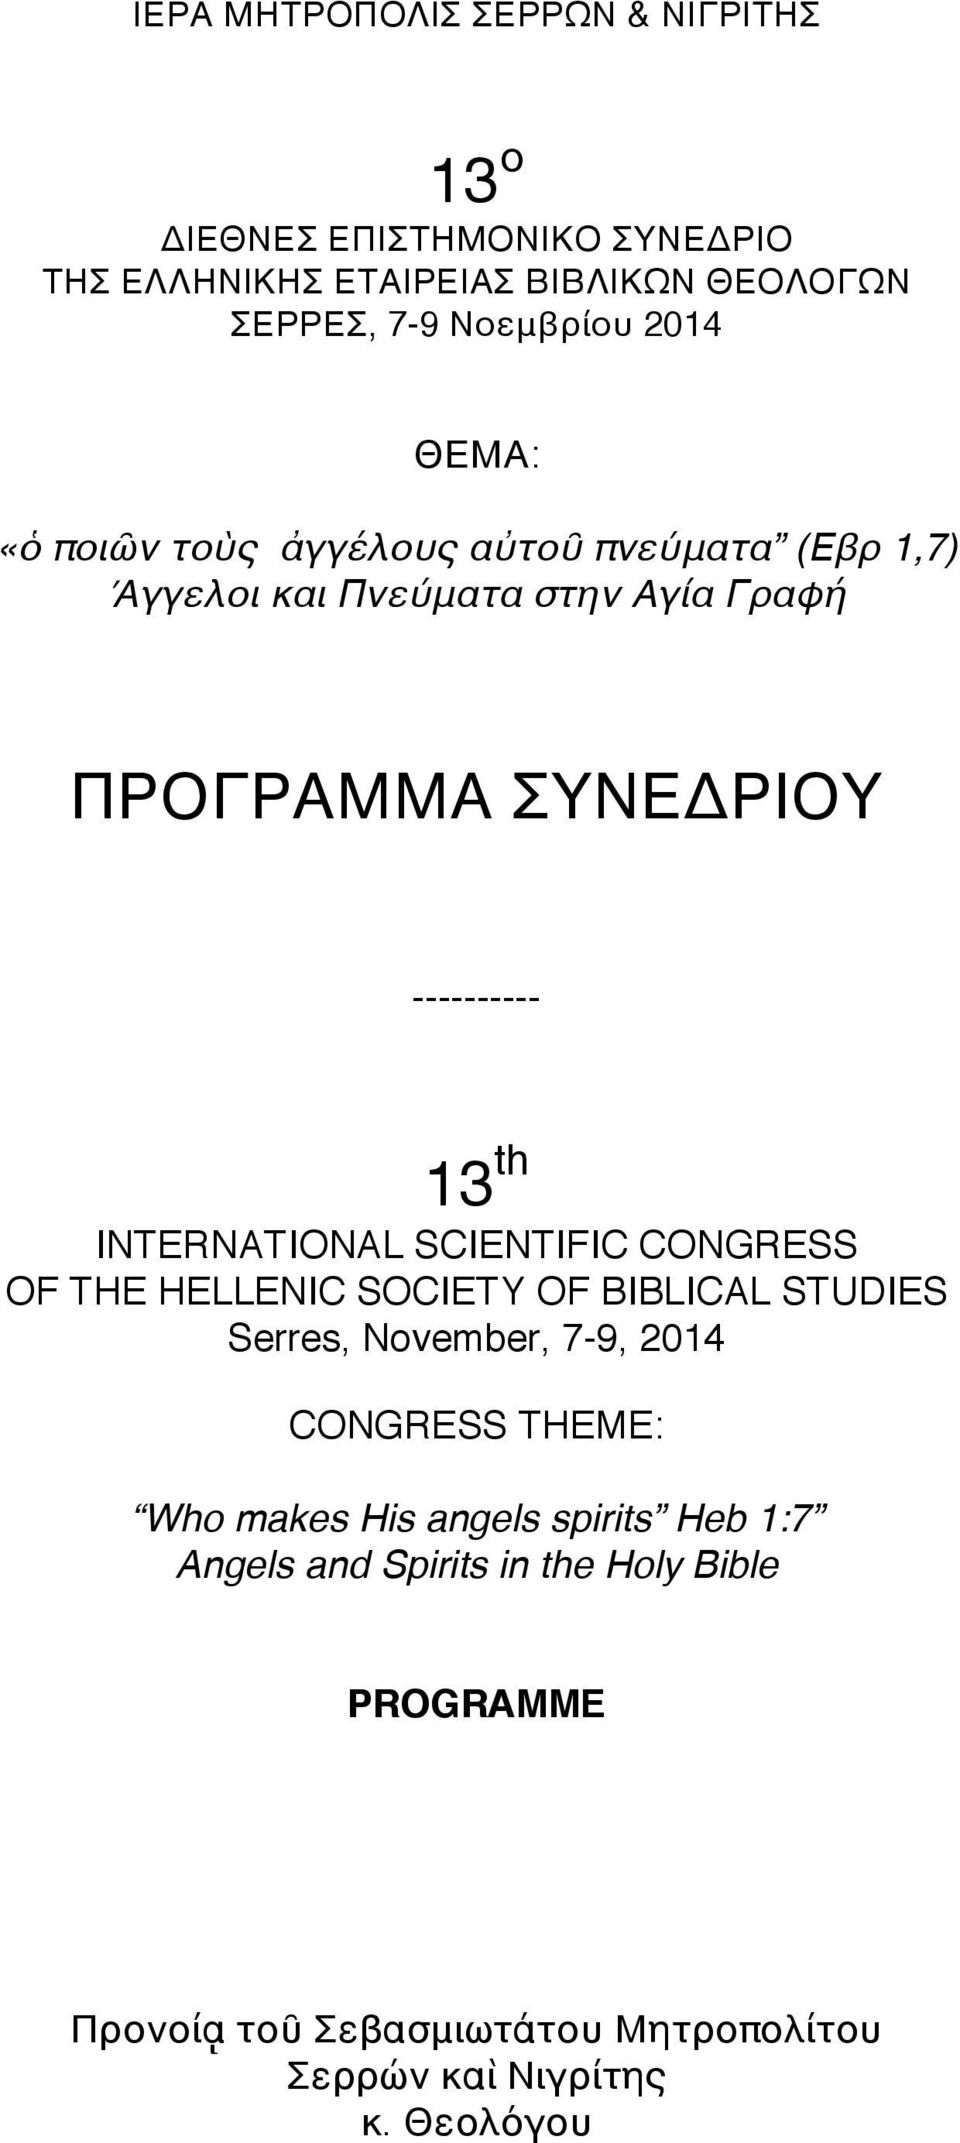 INTERNATIONAL SCIENTIFIC CONGRESS OF THE HELLENIC SOCIETY OF BIBLICAL STUDIES Serres, November, 7-9, 2014 CONGRESS THEME: Who makes His